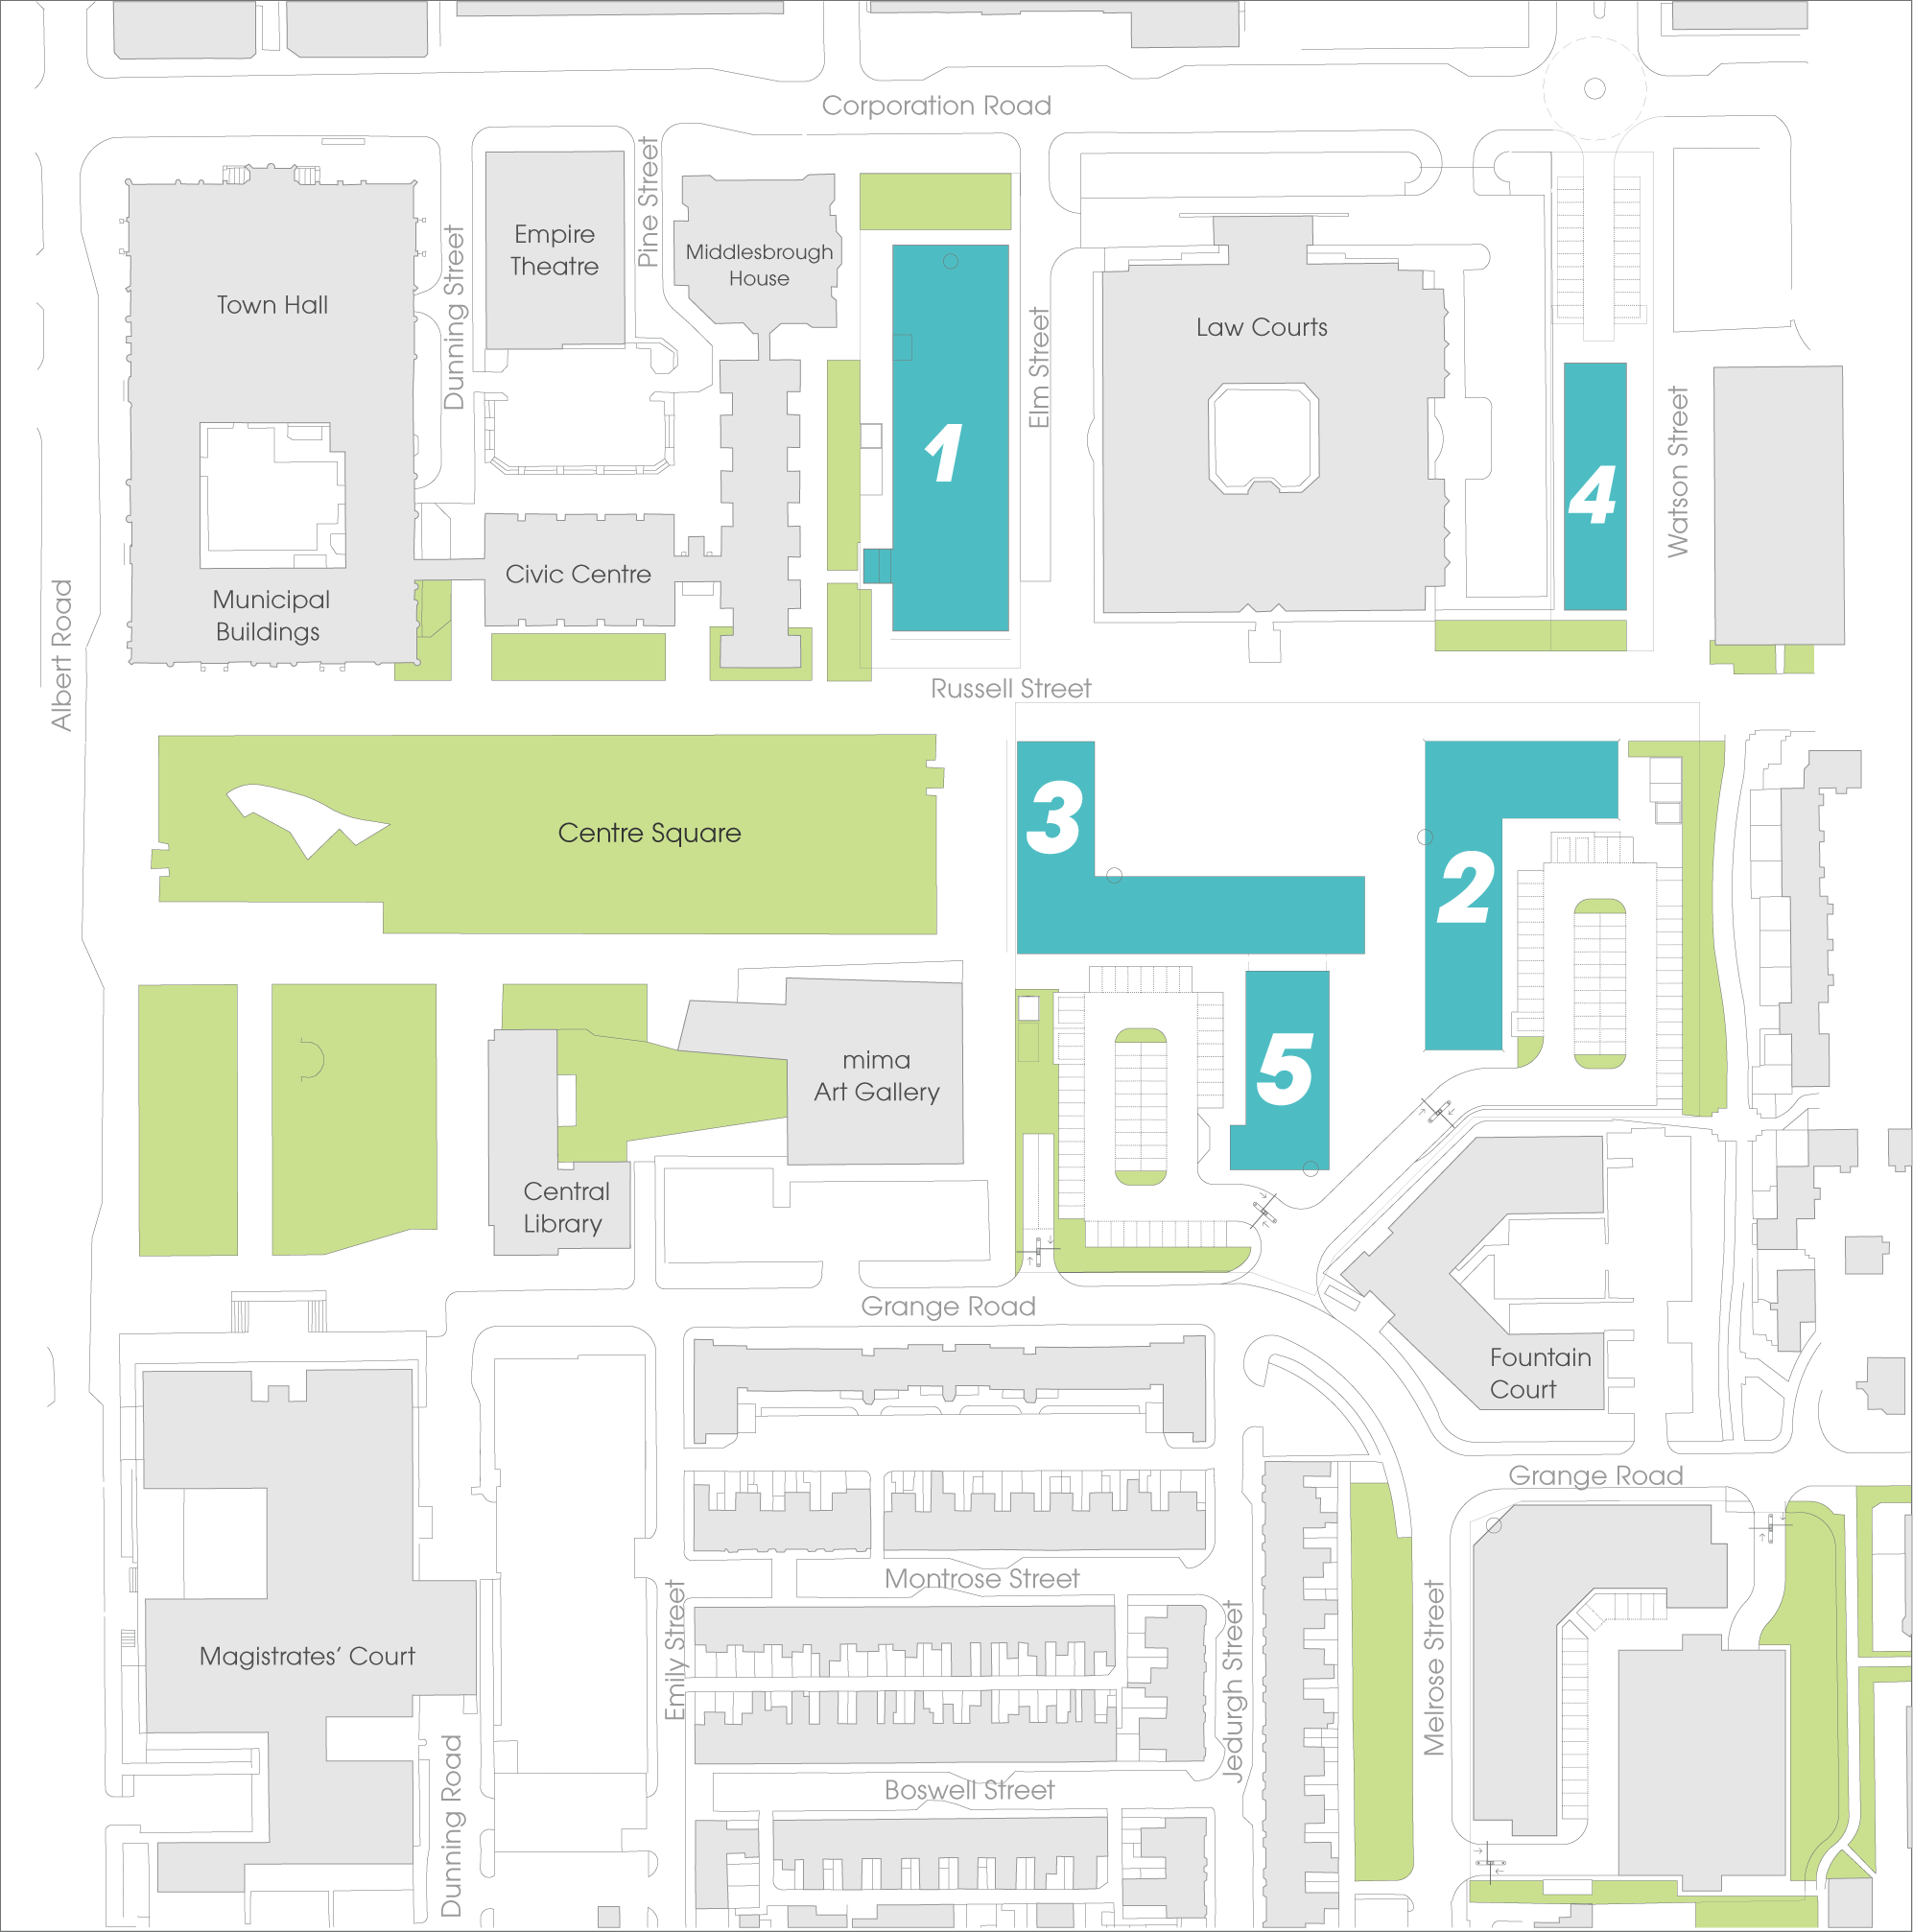 centre-sq-masterplan-website-5b2d14f274a52.png (original)